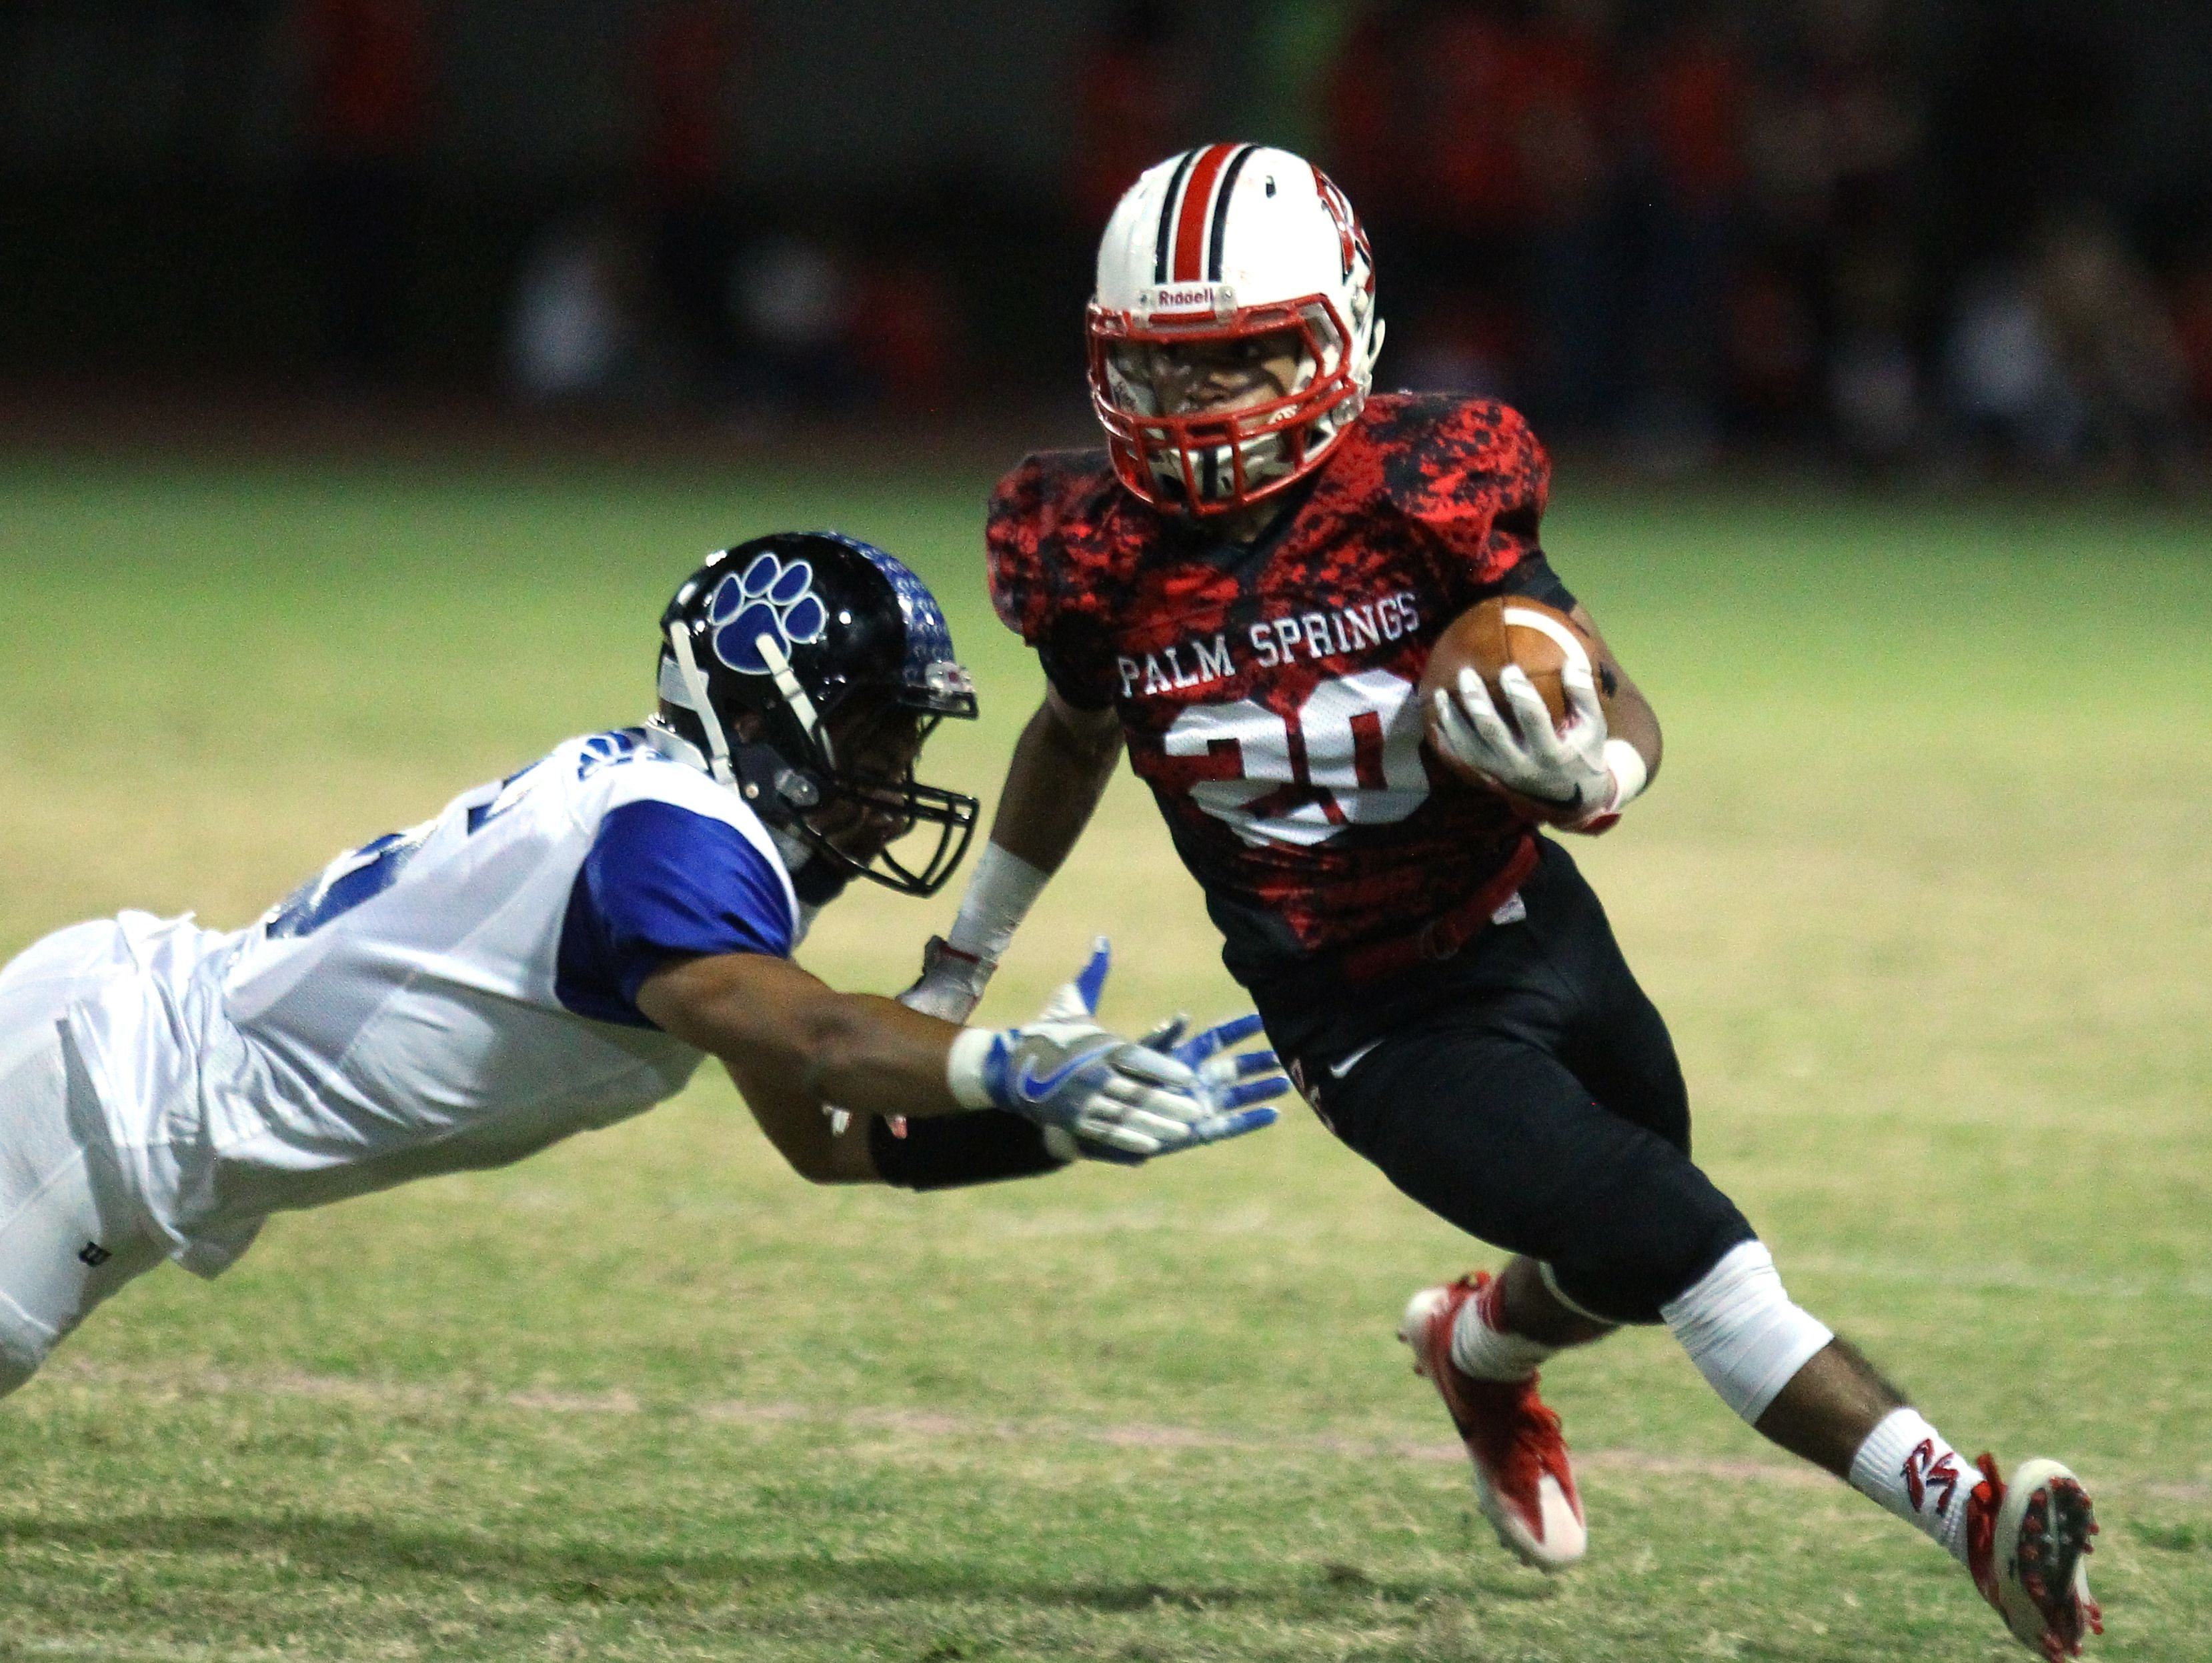 Palm Springs High School's Nick Reyes Foster evades a tackle by Cathedral City High School'during their game at Palm Springs.